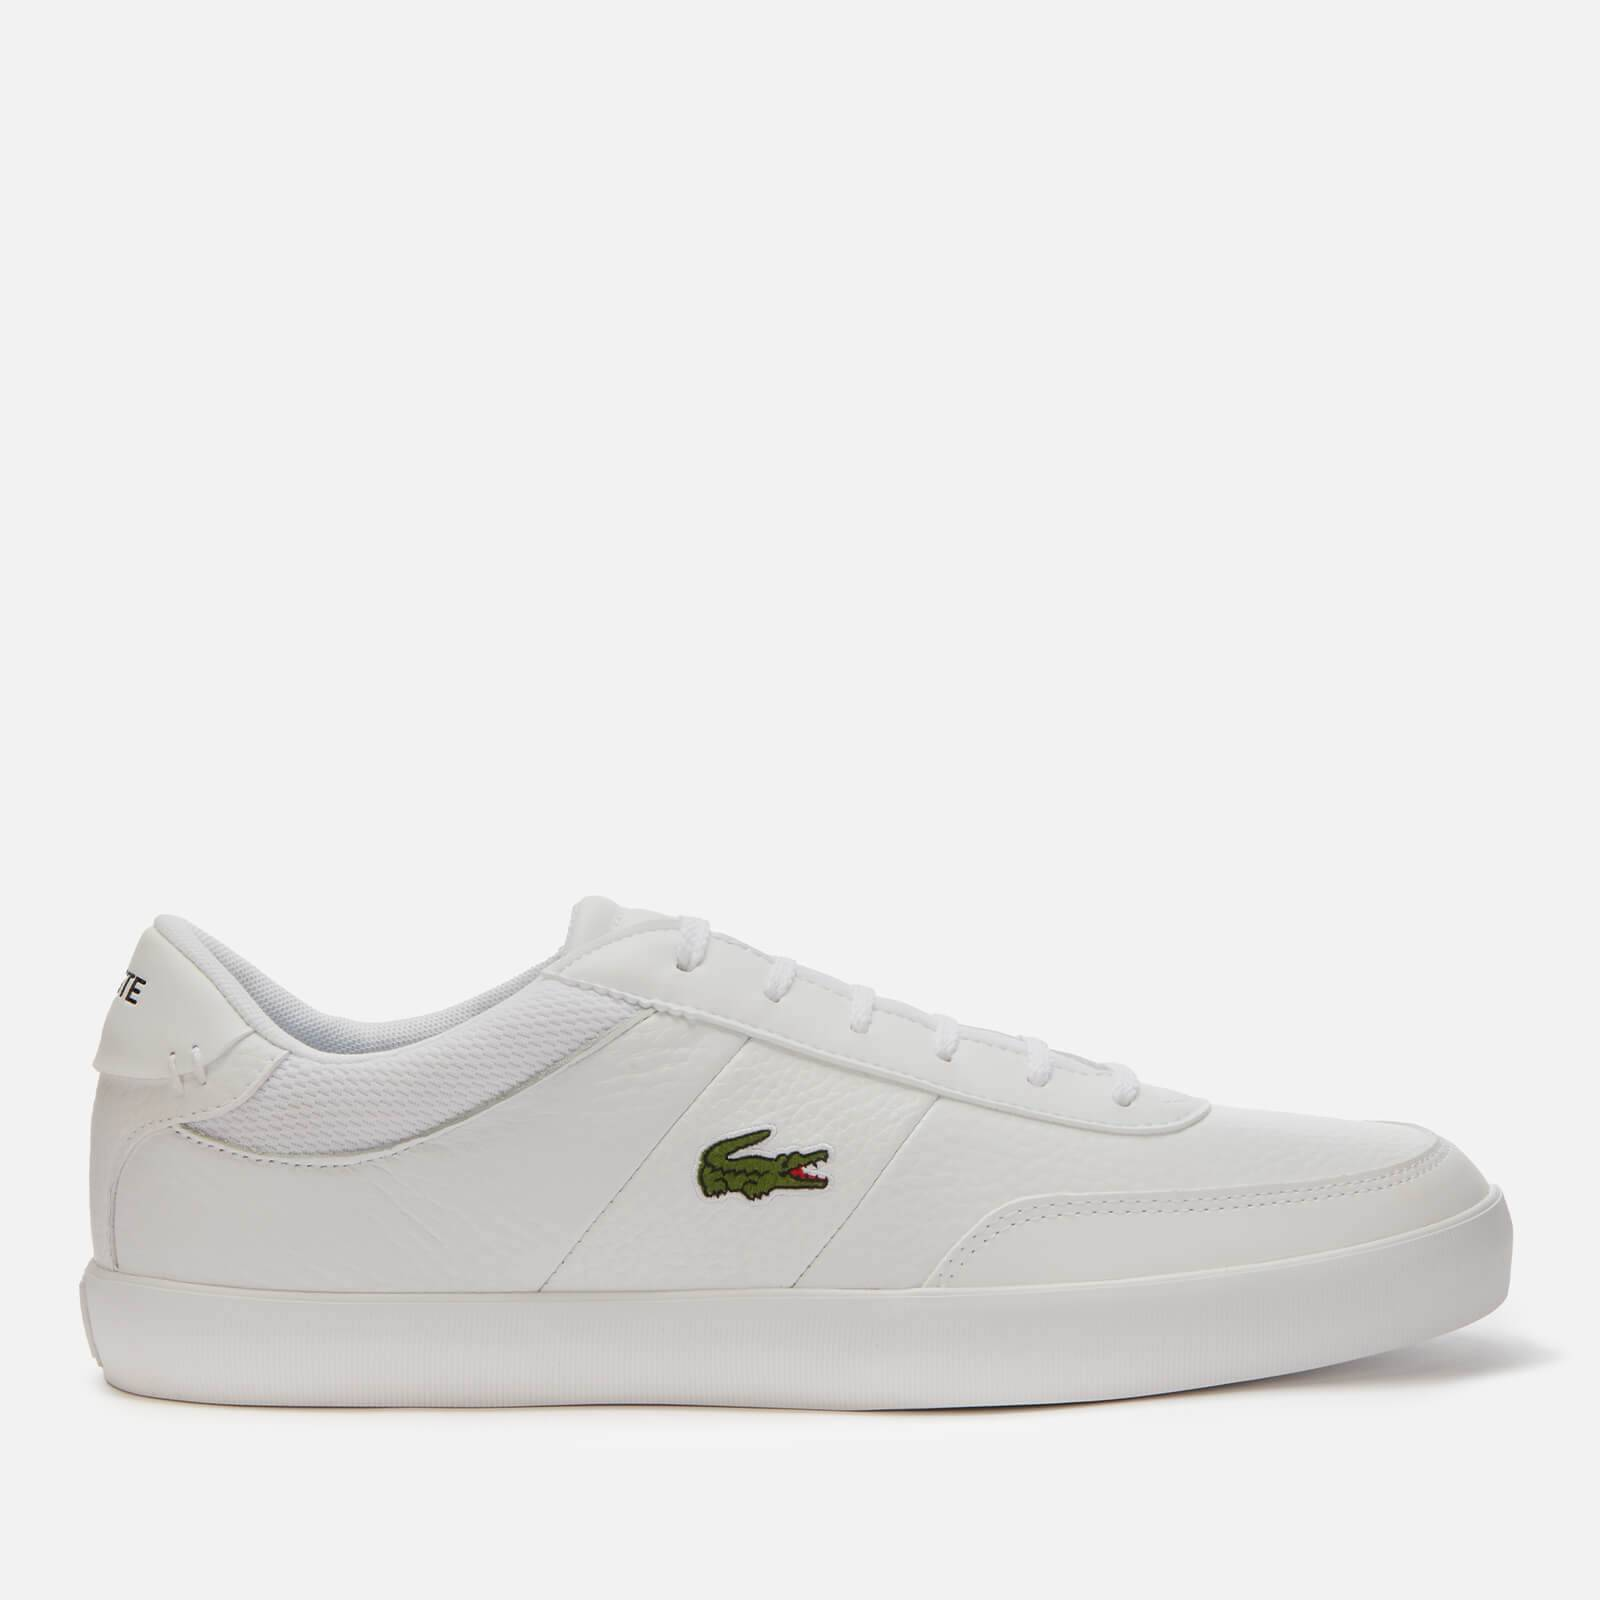 Lacoste Men's Court Master 120 Low Top Trainers - White - UK 11